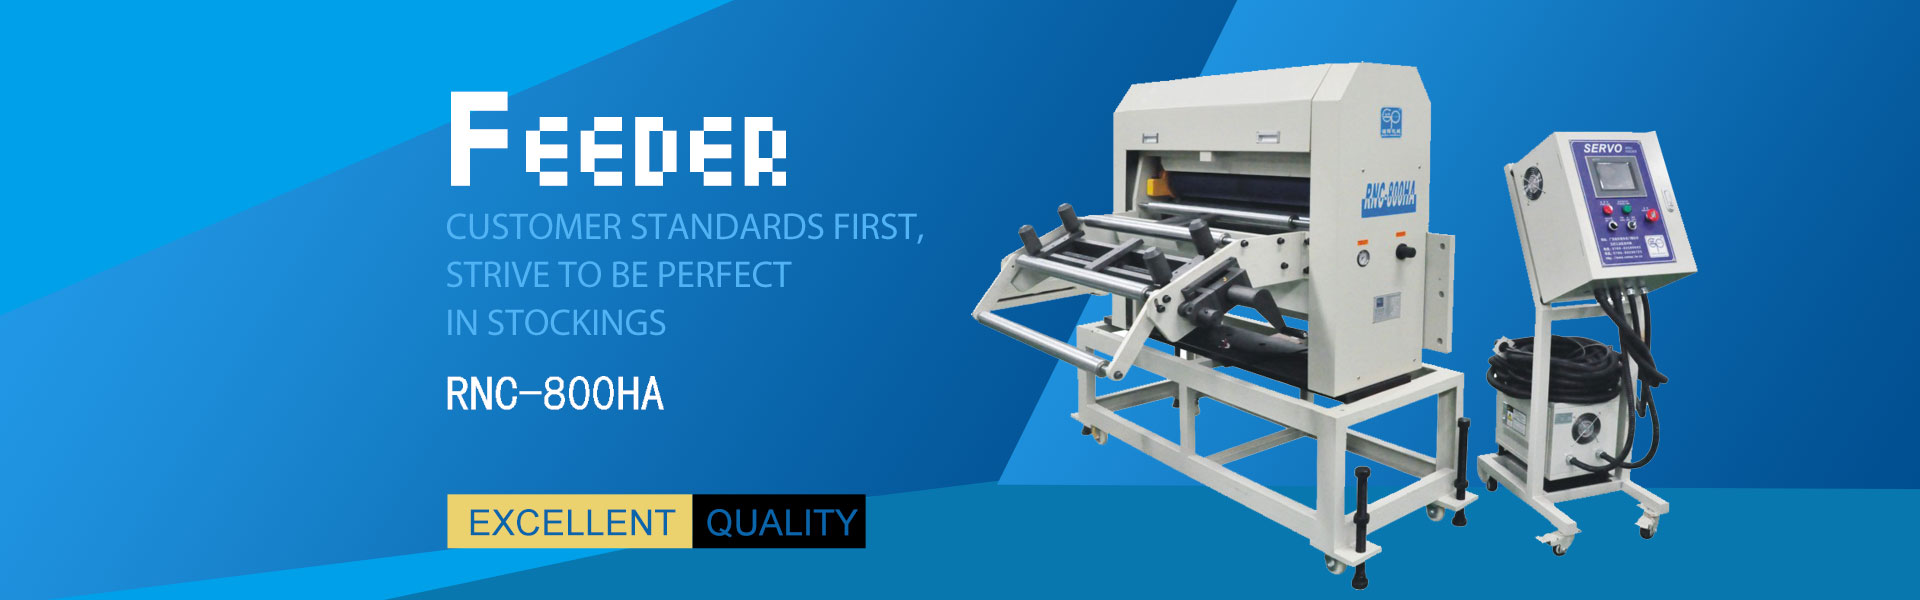 servo feeder,straightener feeder,decoiler,uncoiler straightener,Servo Roll Feeders,RUIHUI